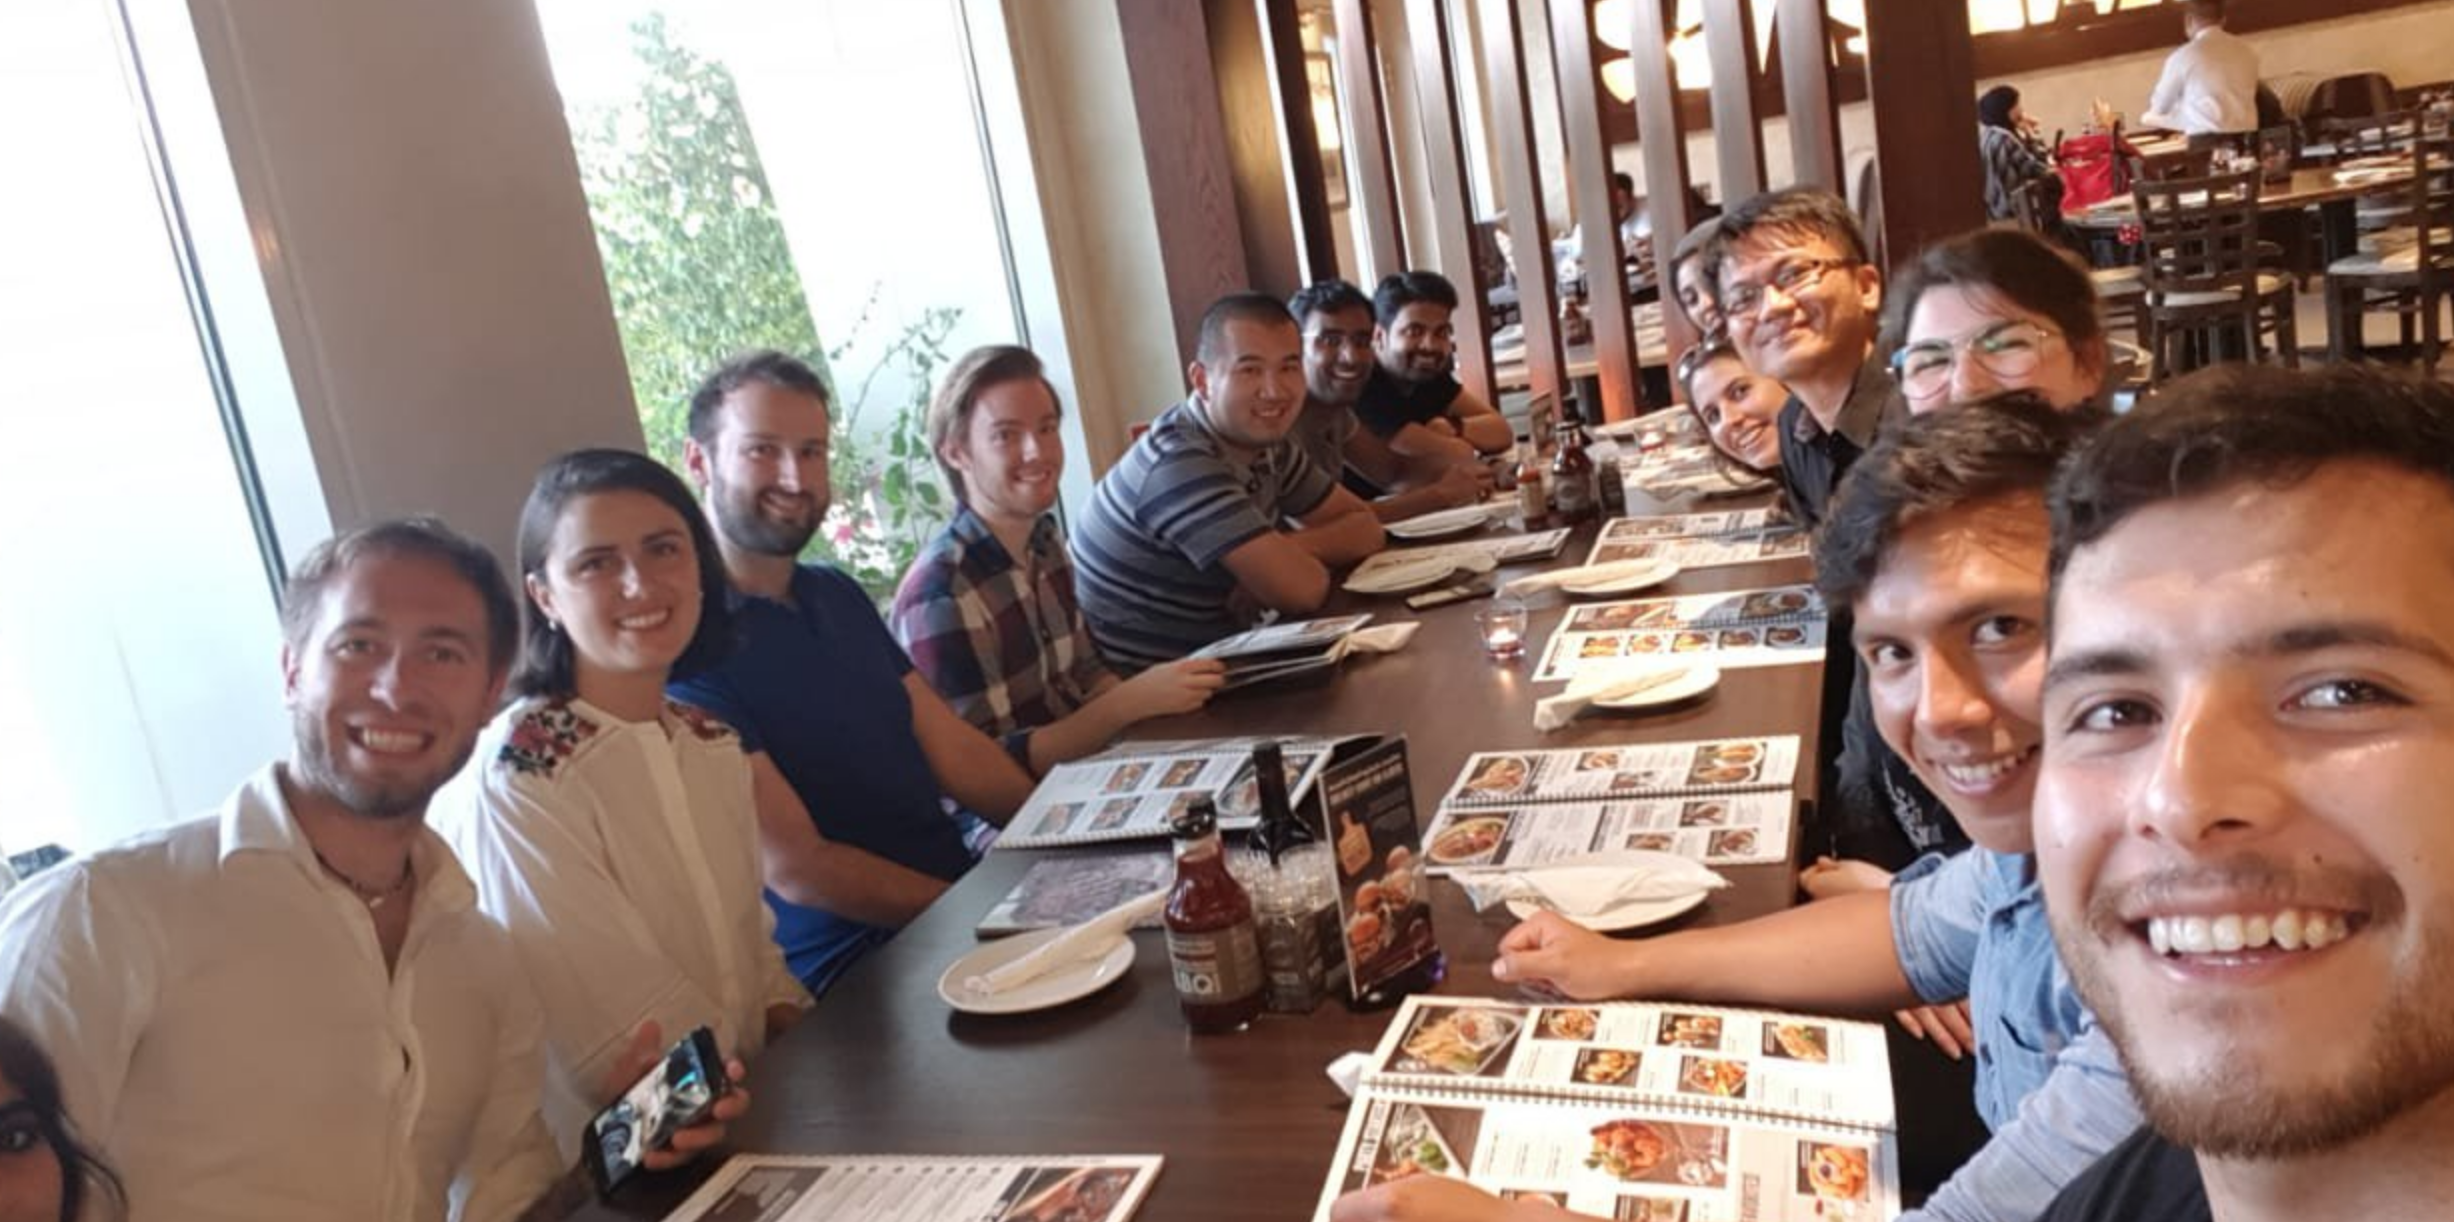 Group Dinner at KAEC! - 15/7/18OMEGA Lab enjoyed a lovely dinner and evening at a nearby city called KAEC.